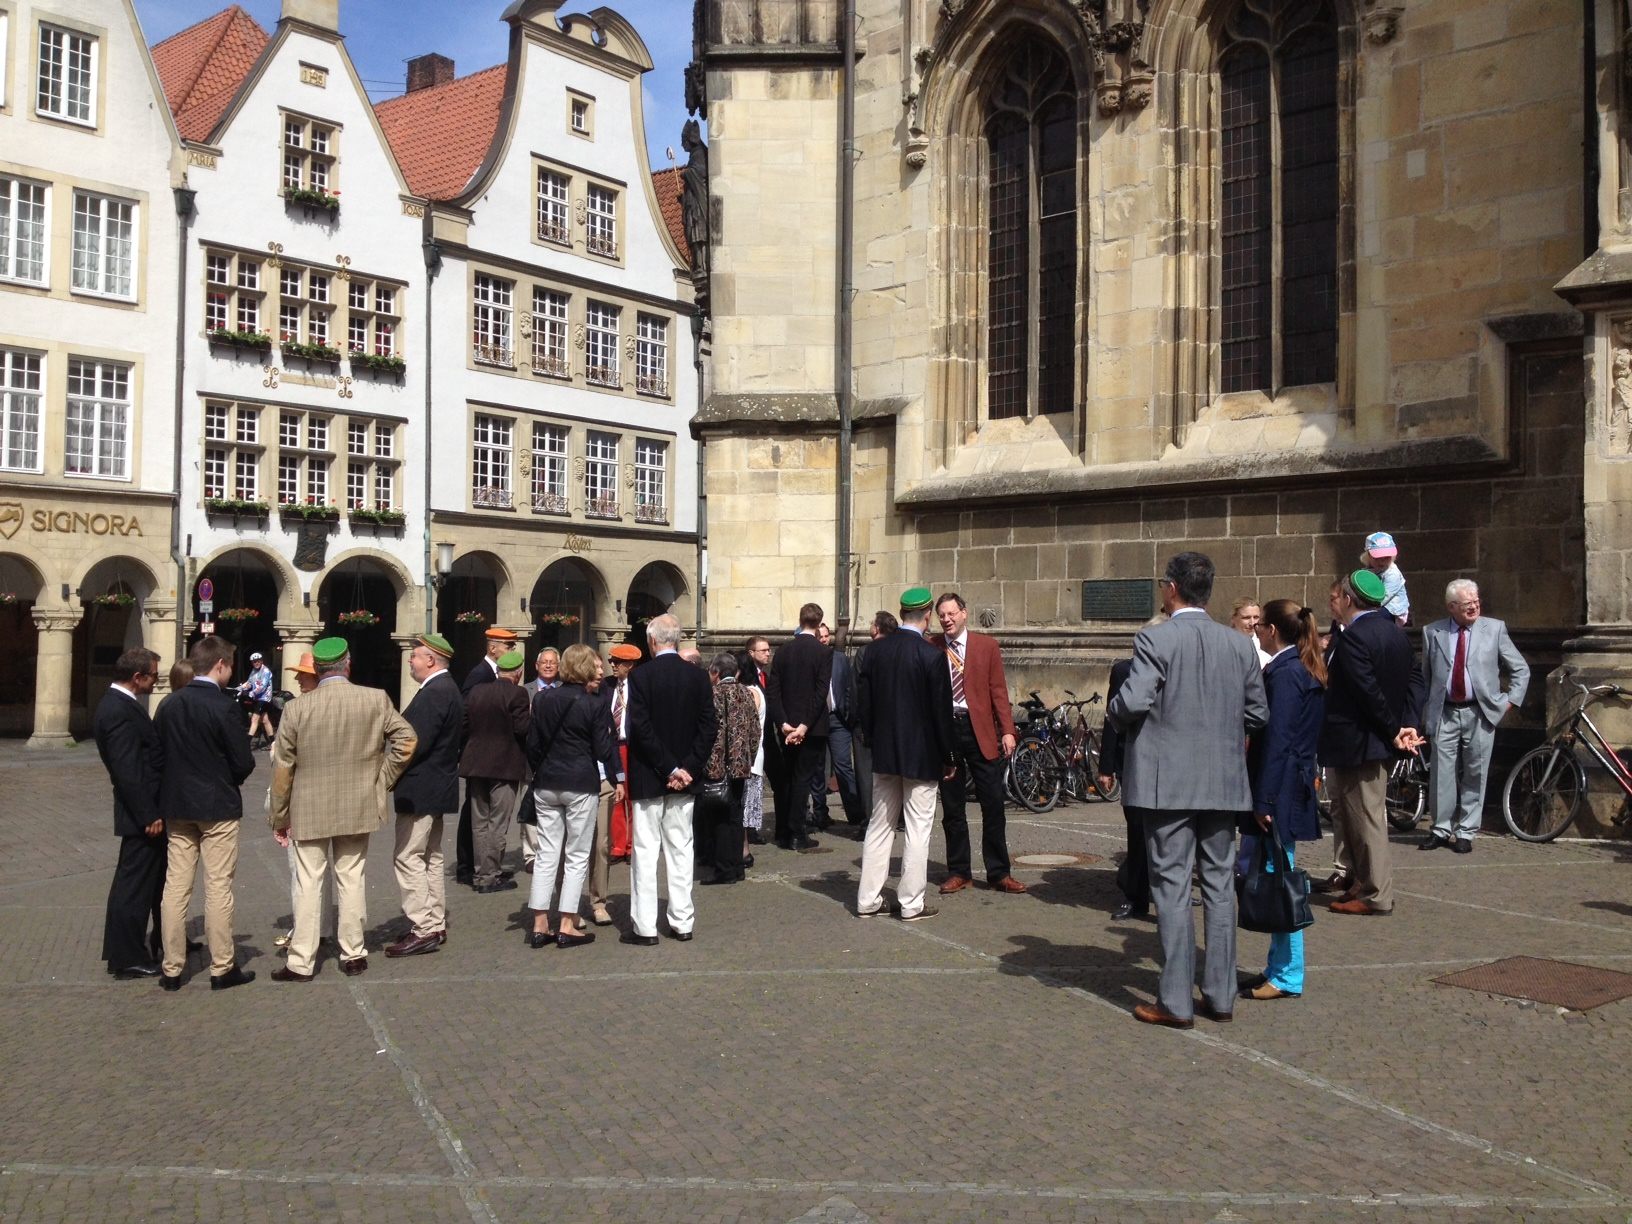 Group of (ex)students with their Mütze (cap) in front of the Lambertikirche, Münster, Germany, 24 May 2015